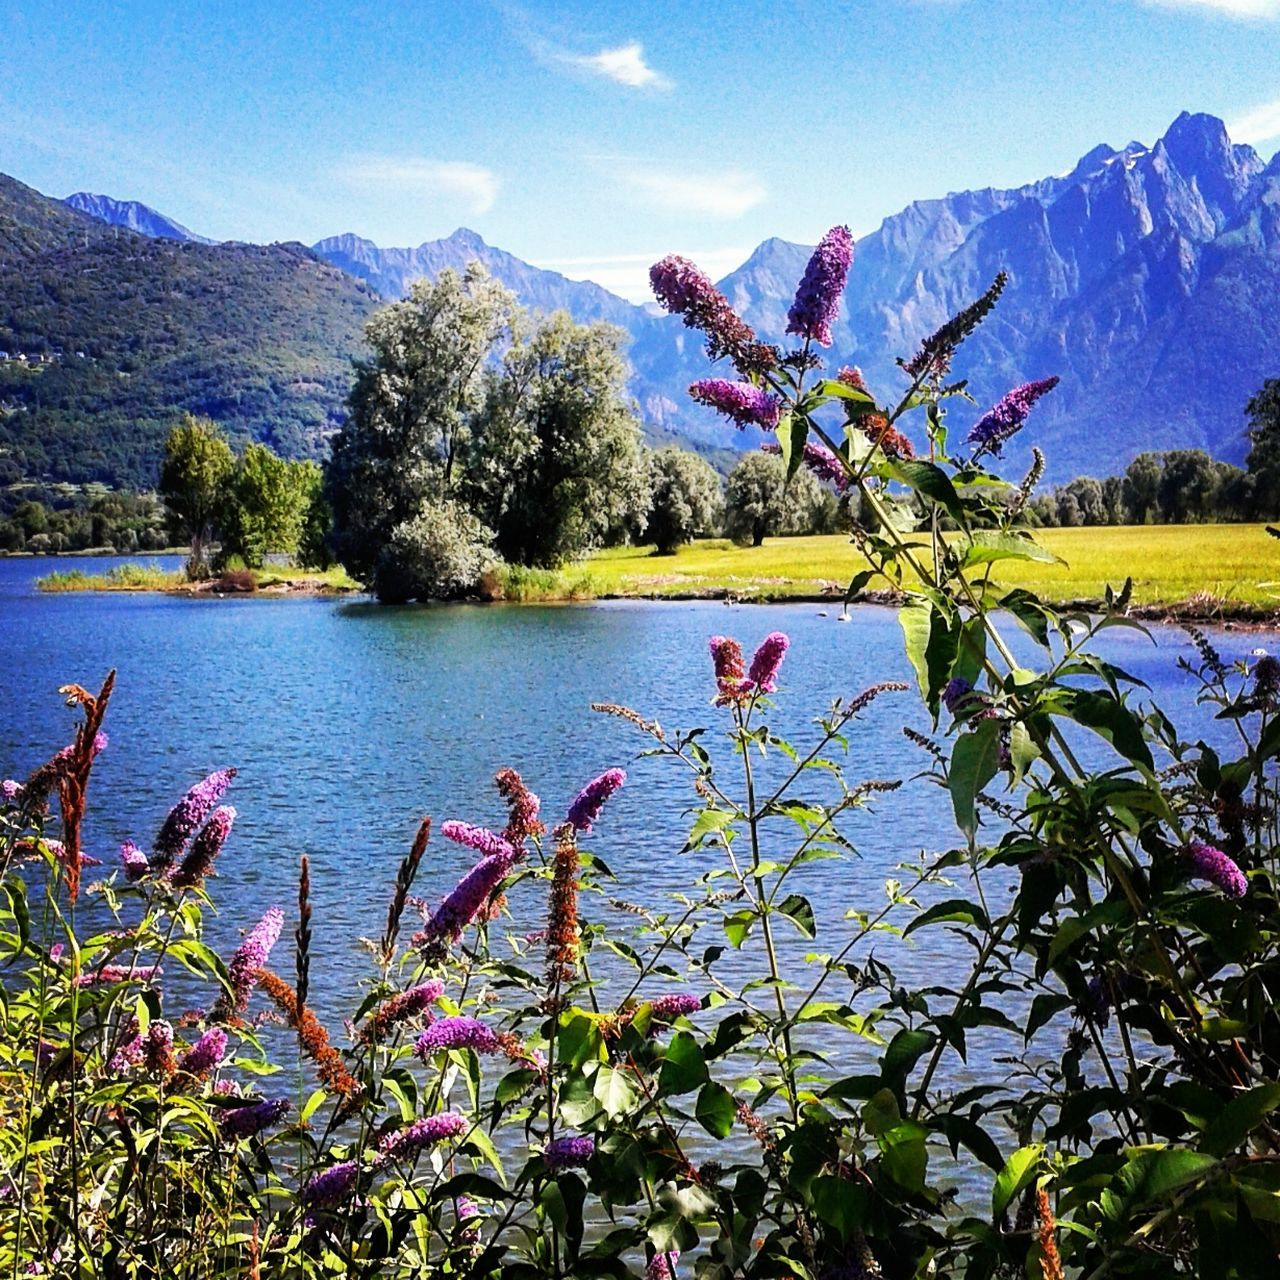 Lake Nature Colorful Mountain Lakecomo Landscape Skyporn Relaxing Happy